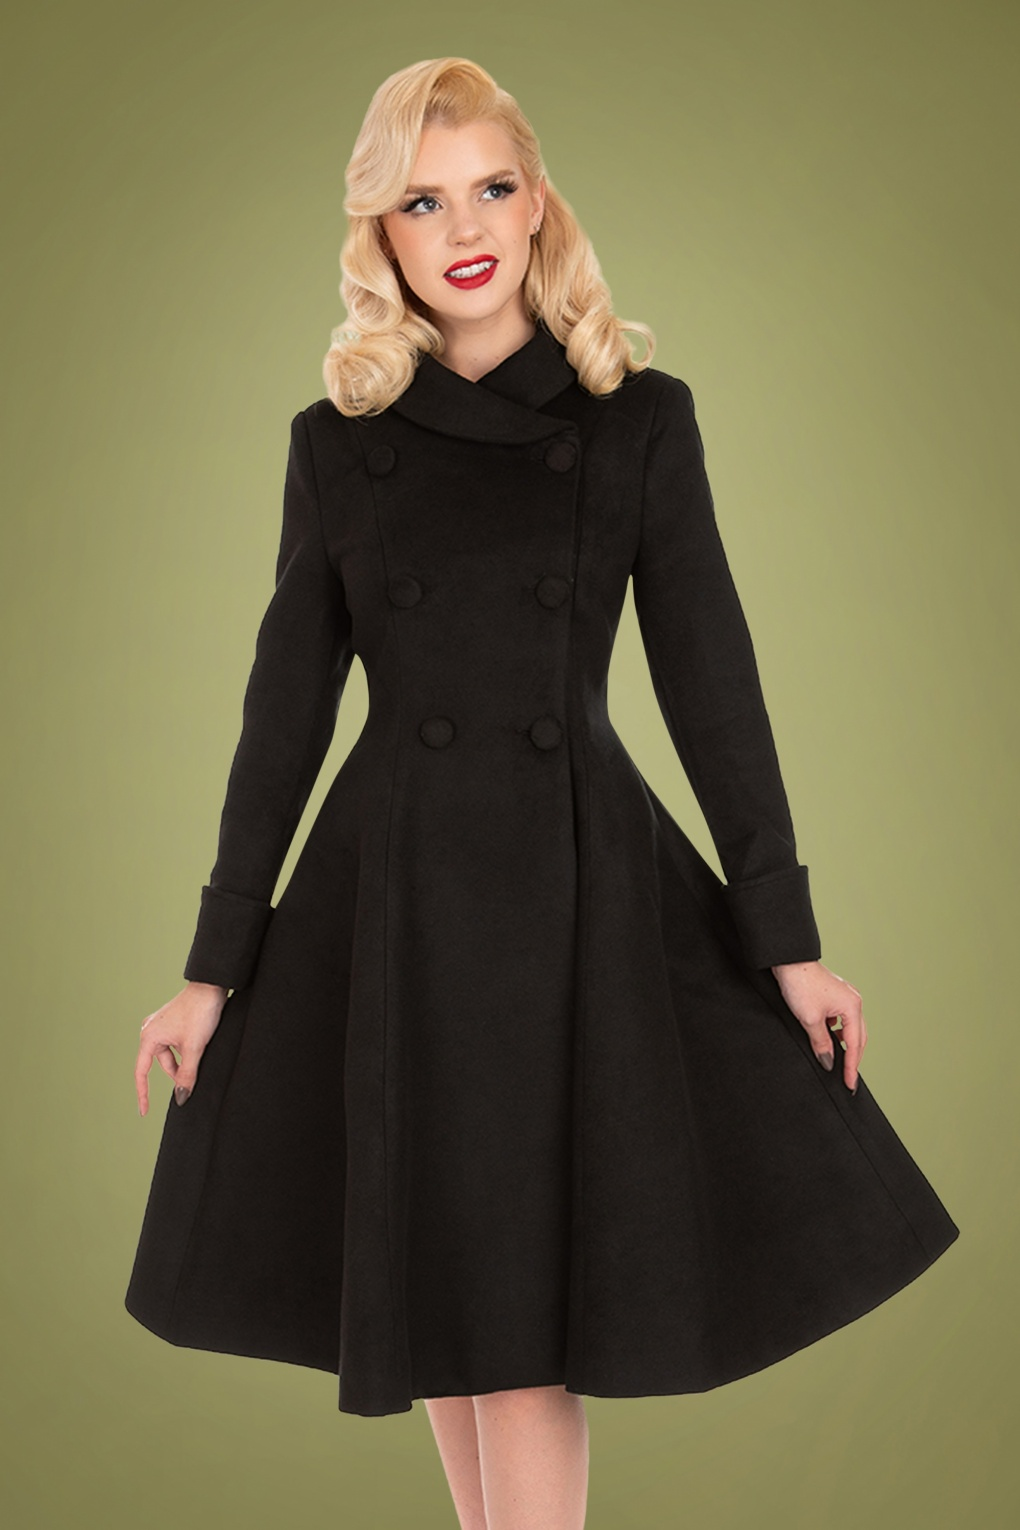 1950s Jackets, Coats, Bolero | Swing, Pin Up, Rockabilly 50s Grace Swing Coat in Black £80.07 AT vintagedancer.com